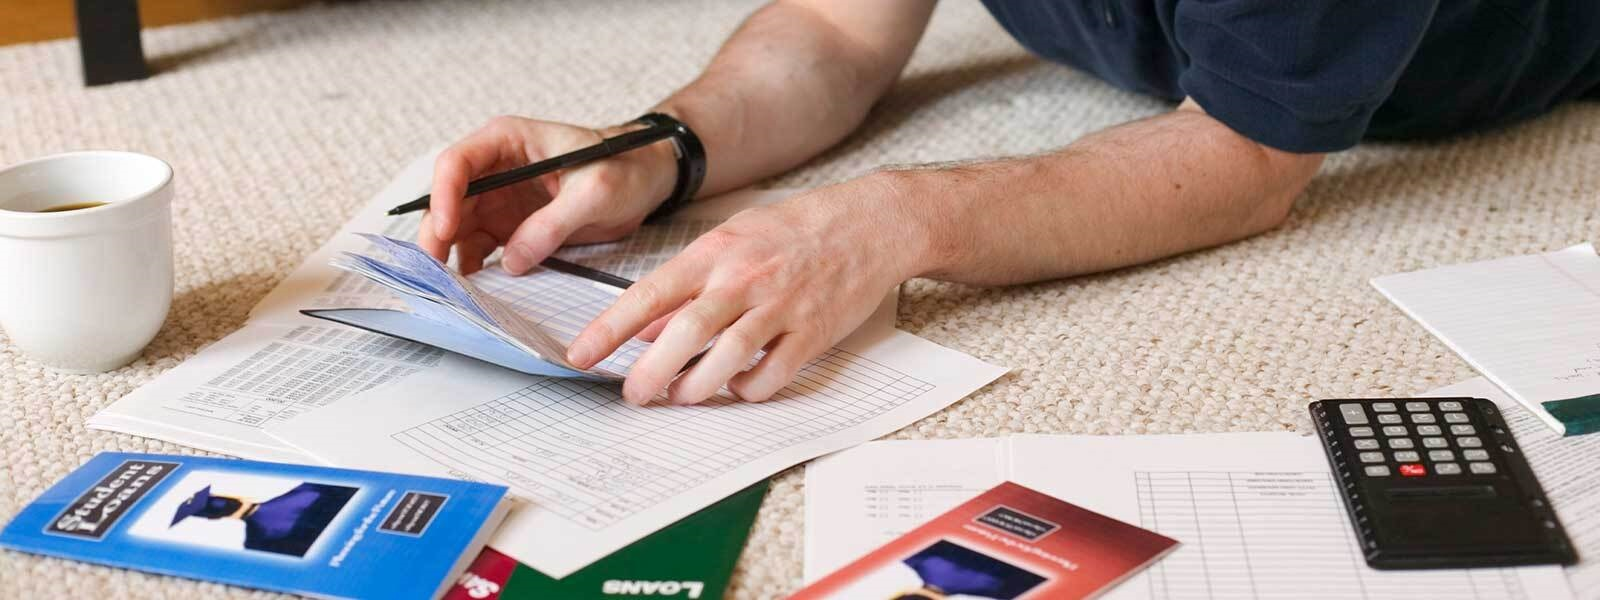 Man's hands holding a checkbook near a student loan pamphlet, scattered papers, and a calculator